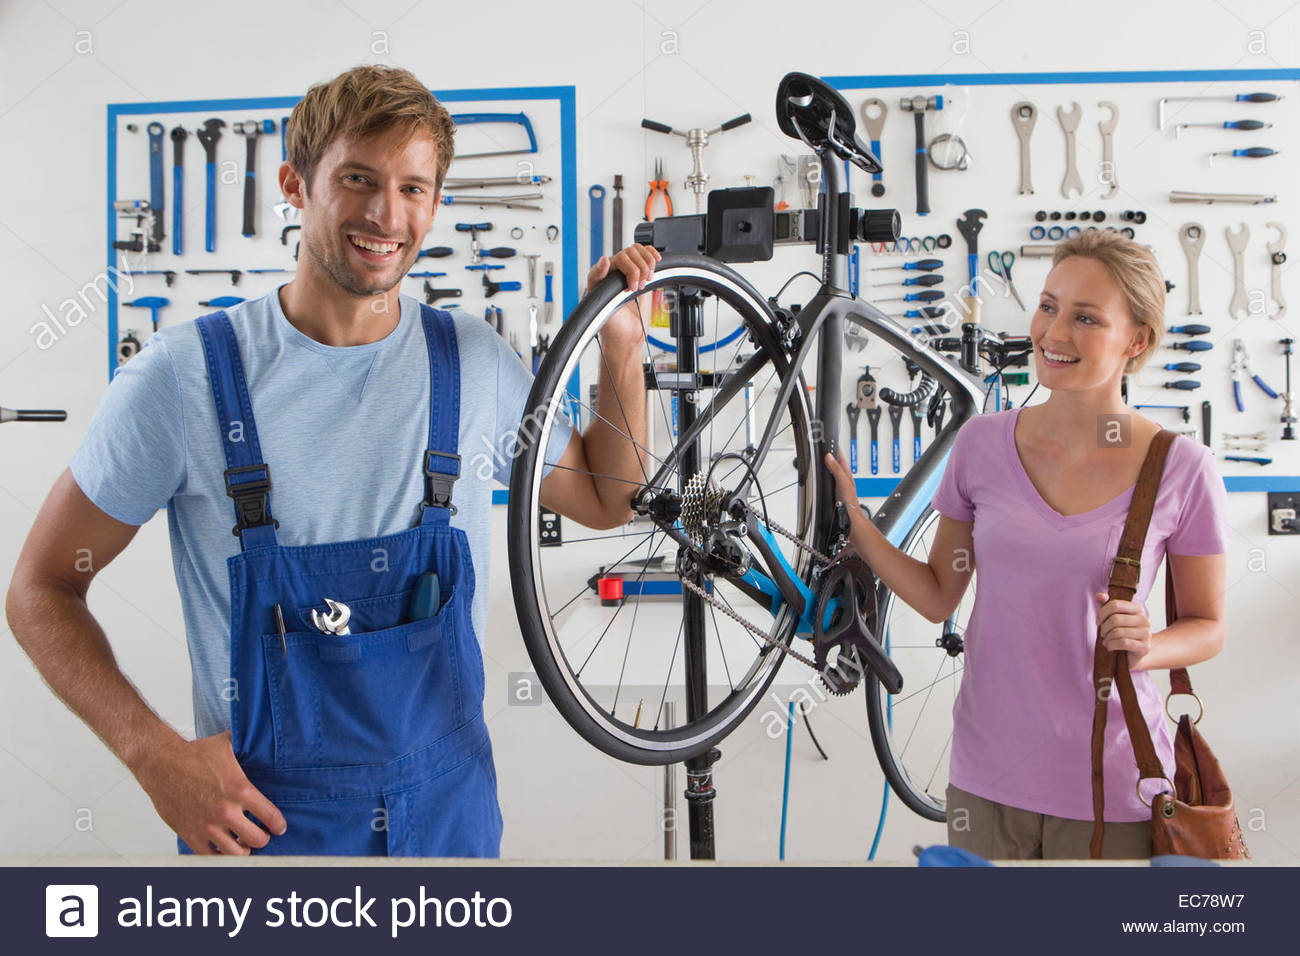 Cycle technician repairing female customers bicycle - Stock Image